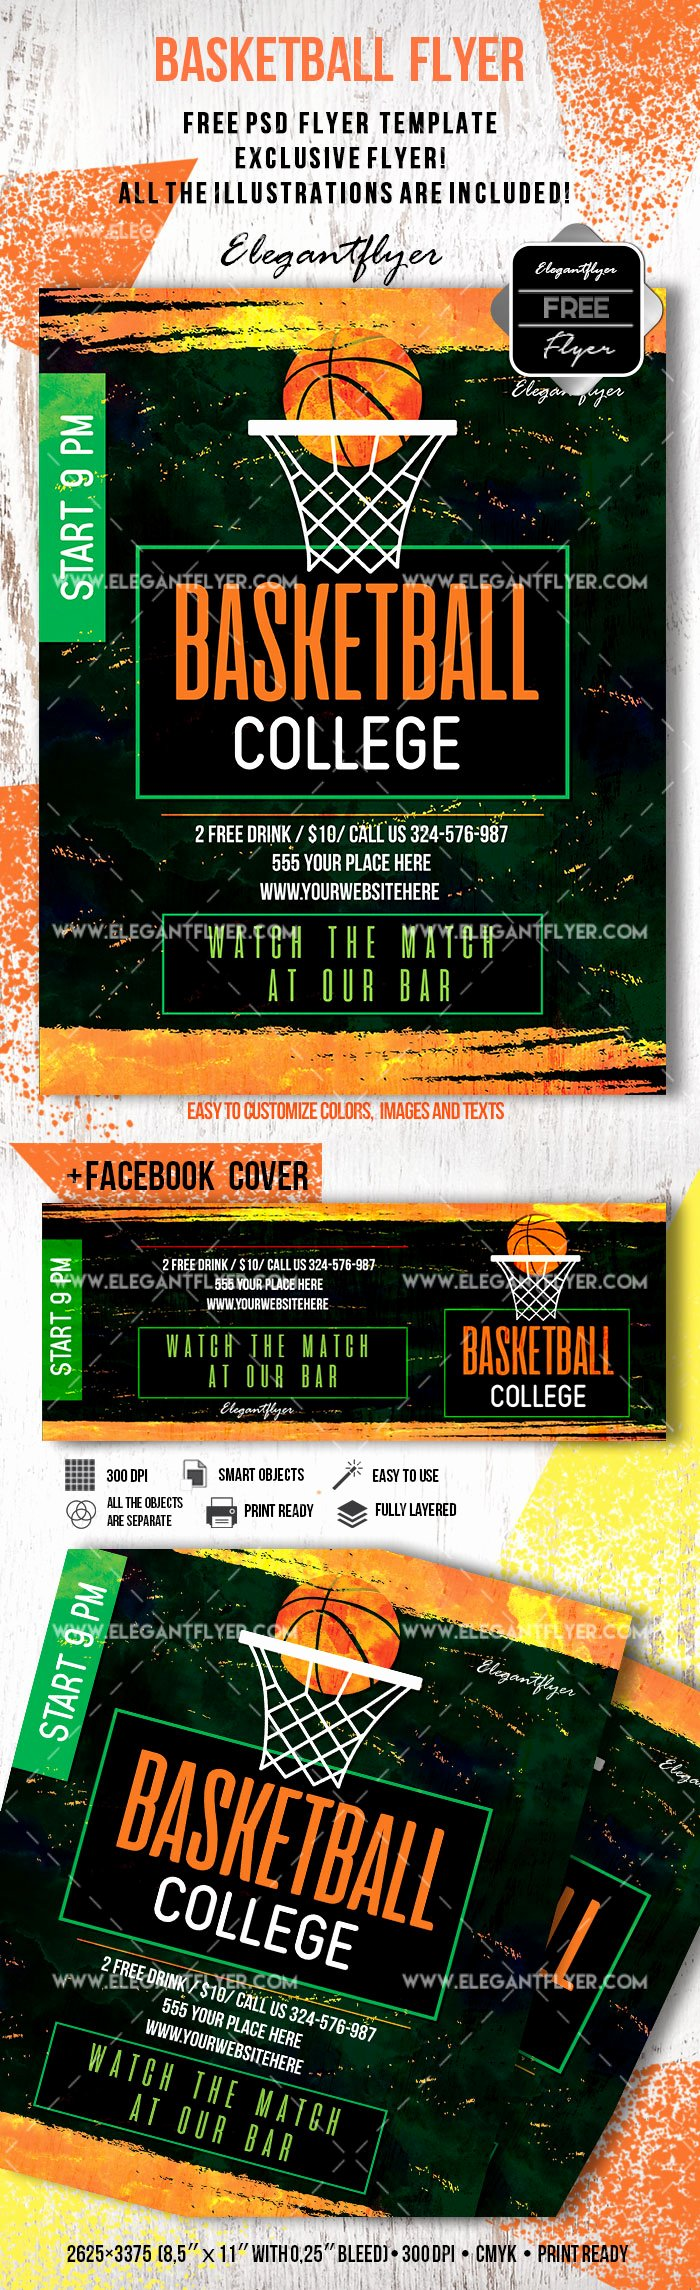 Basketball Flyer Template Free Awesome Free Basketball Flyer Template – by Elegantflyer